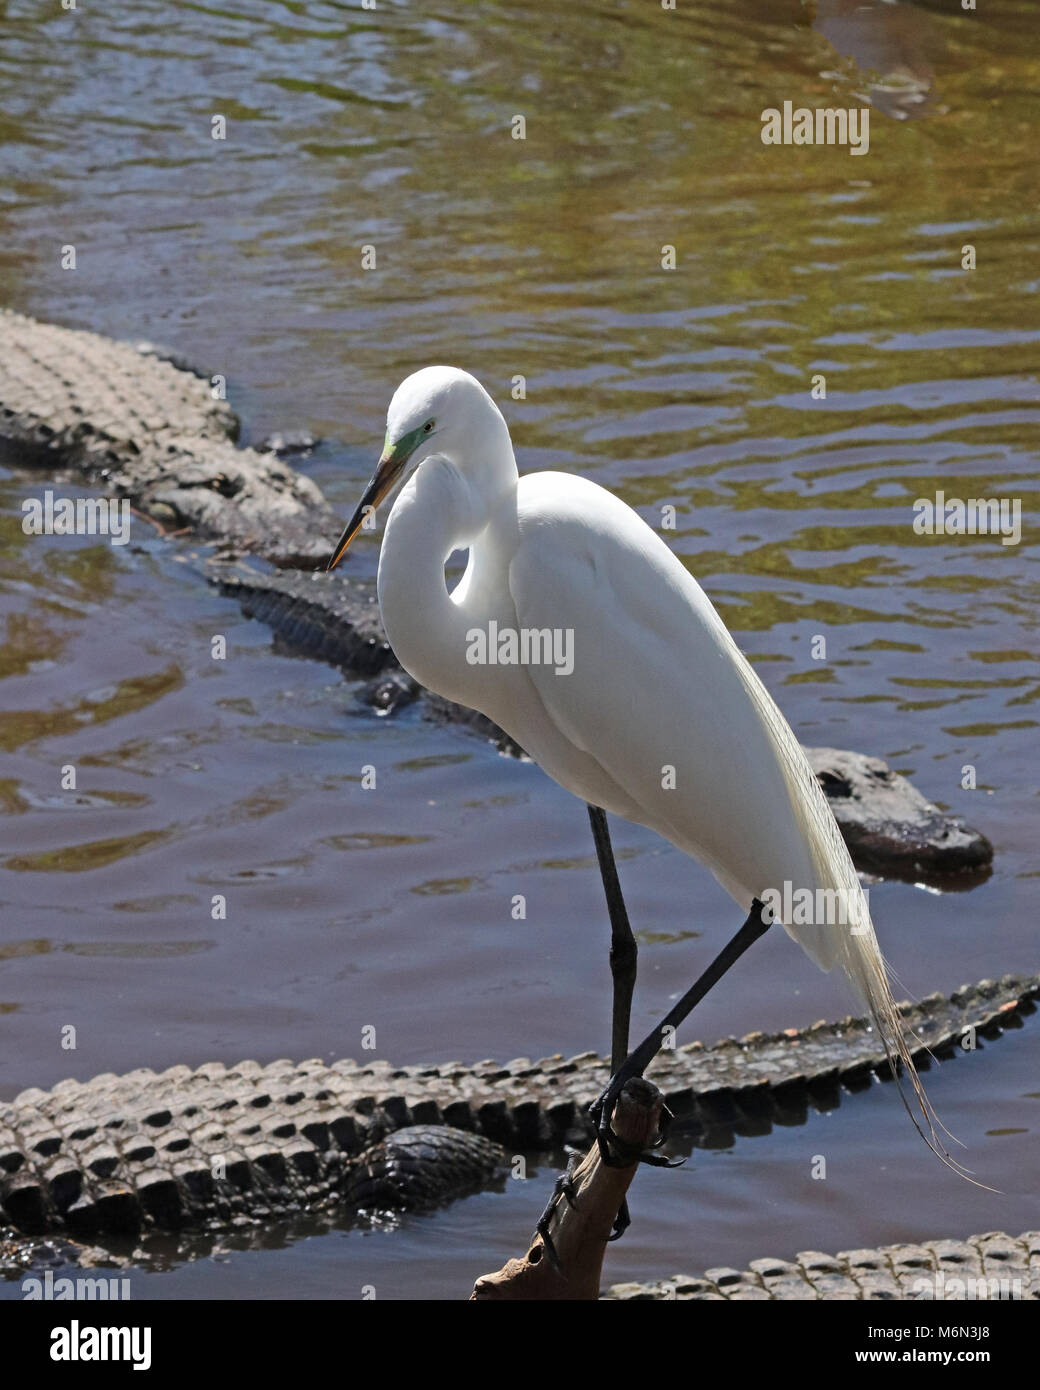 Great White Egret on small perch surrounded by Alligators - Stock Image